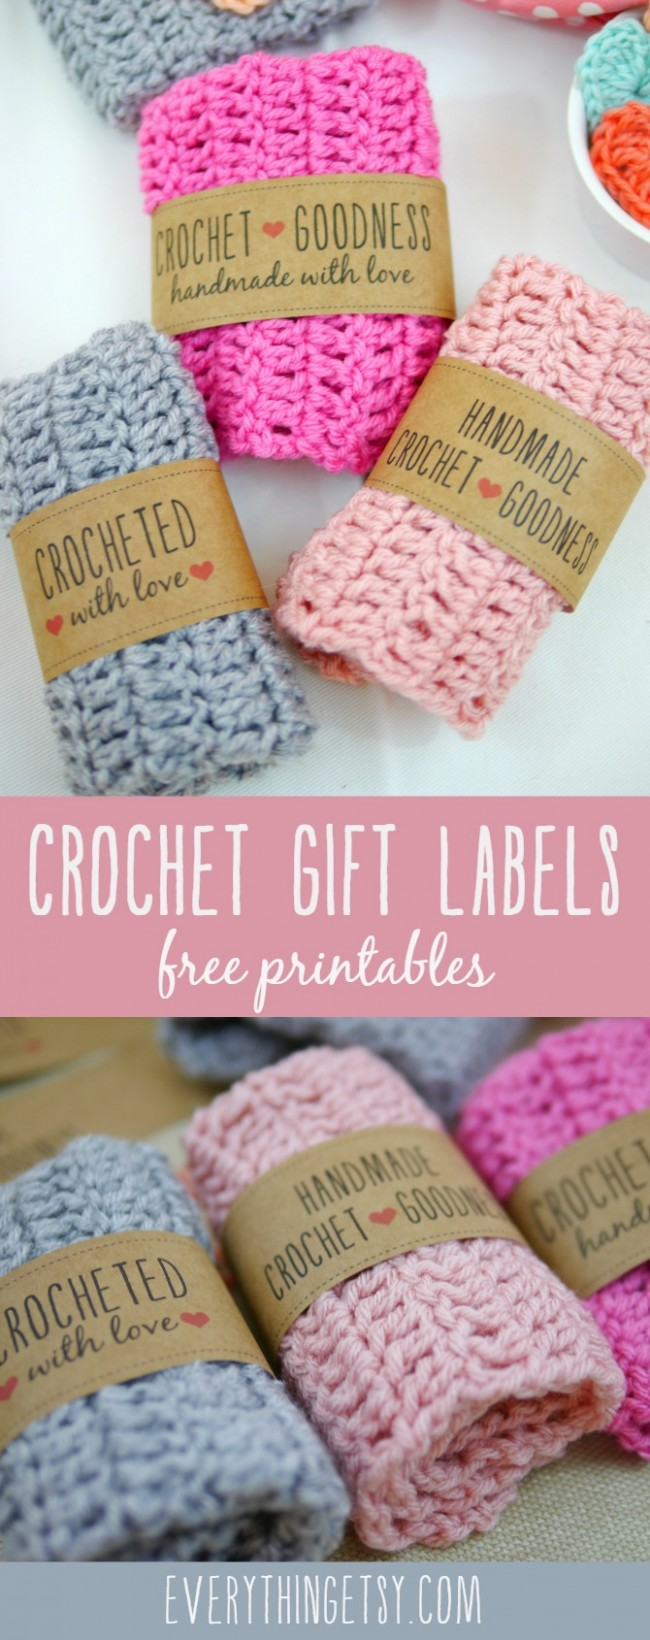 Free Printable Crochet Gift Labels!